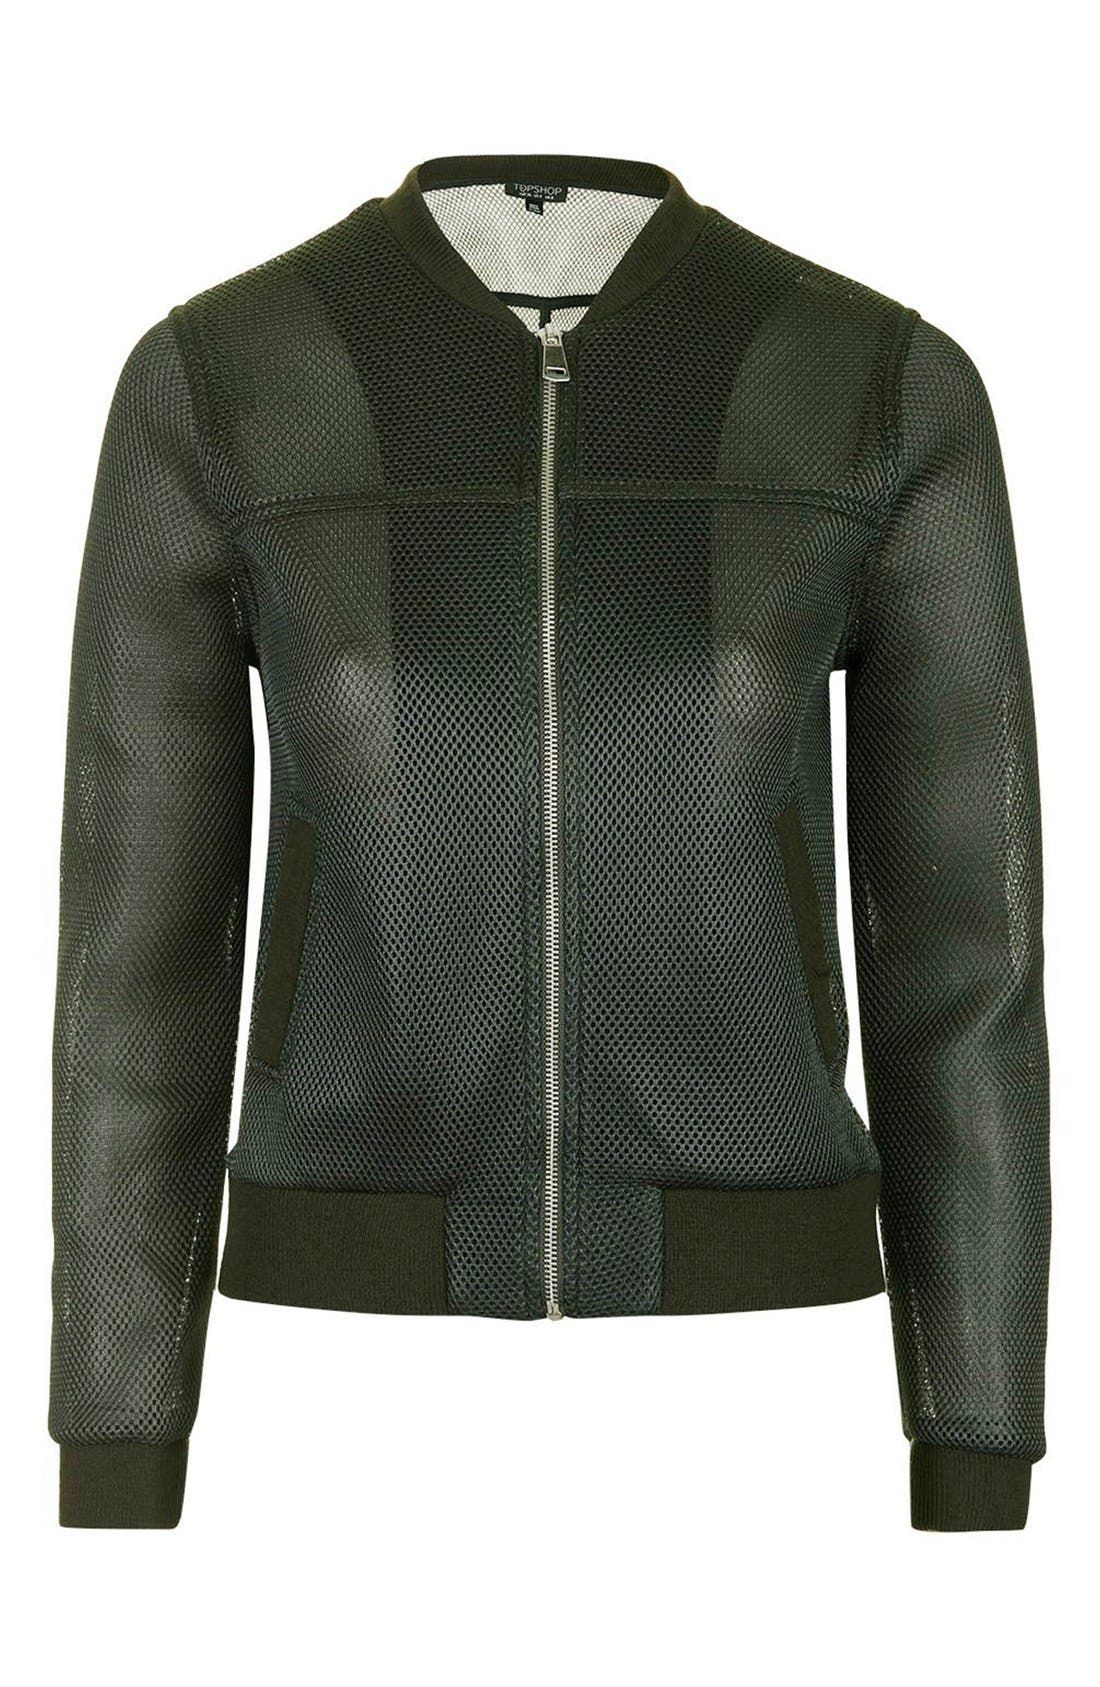 TOPSHOP, 'Airtex' Bomber Jacket, Alternate thumbnail 3, color, 300